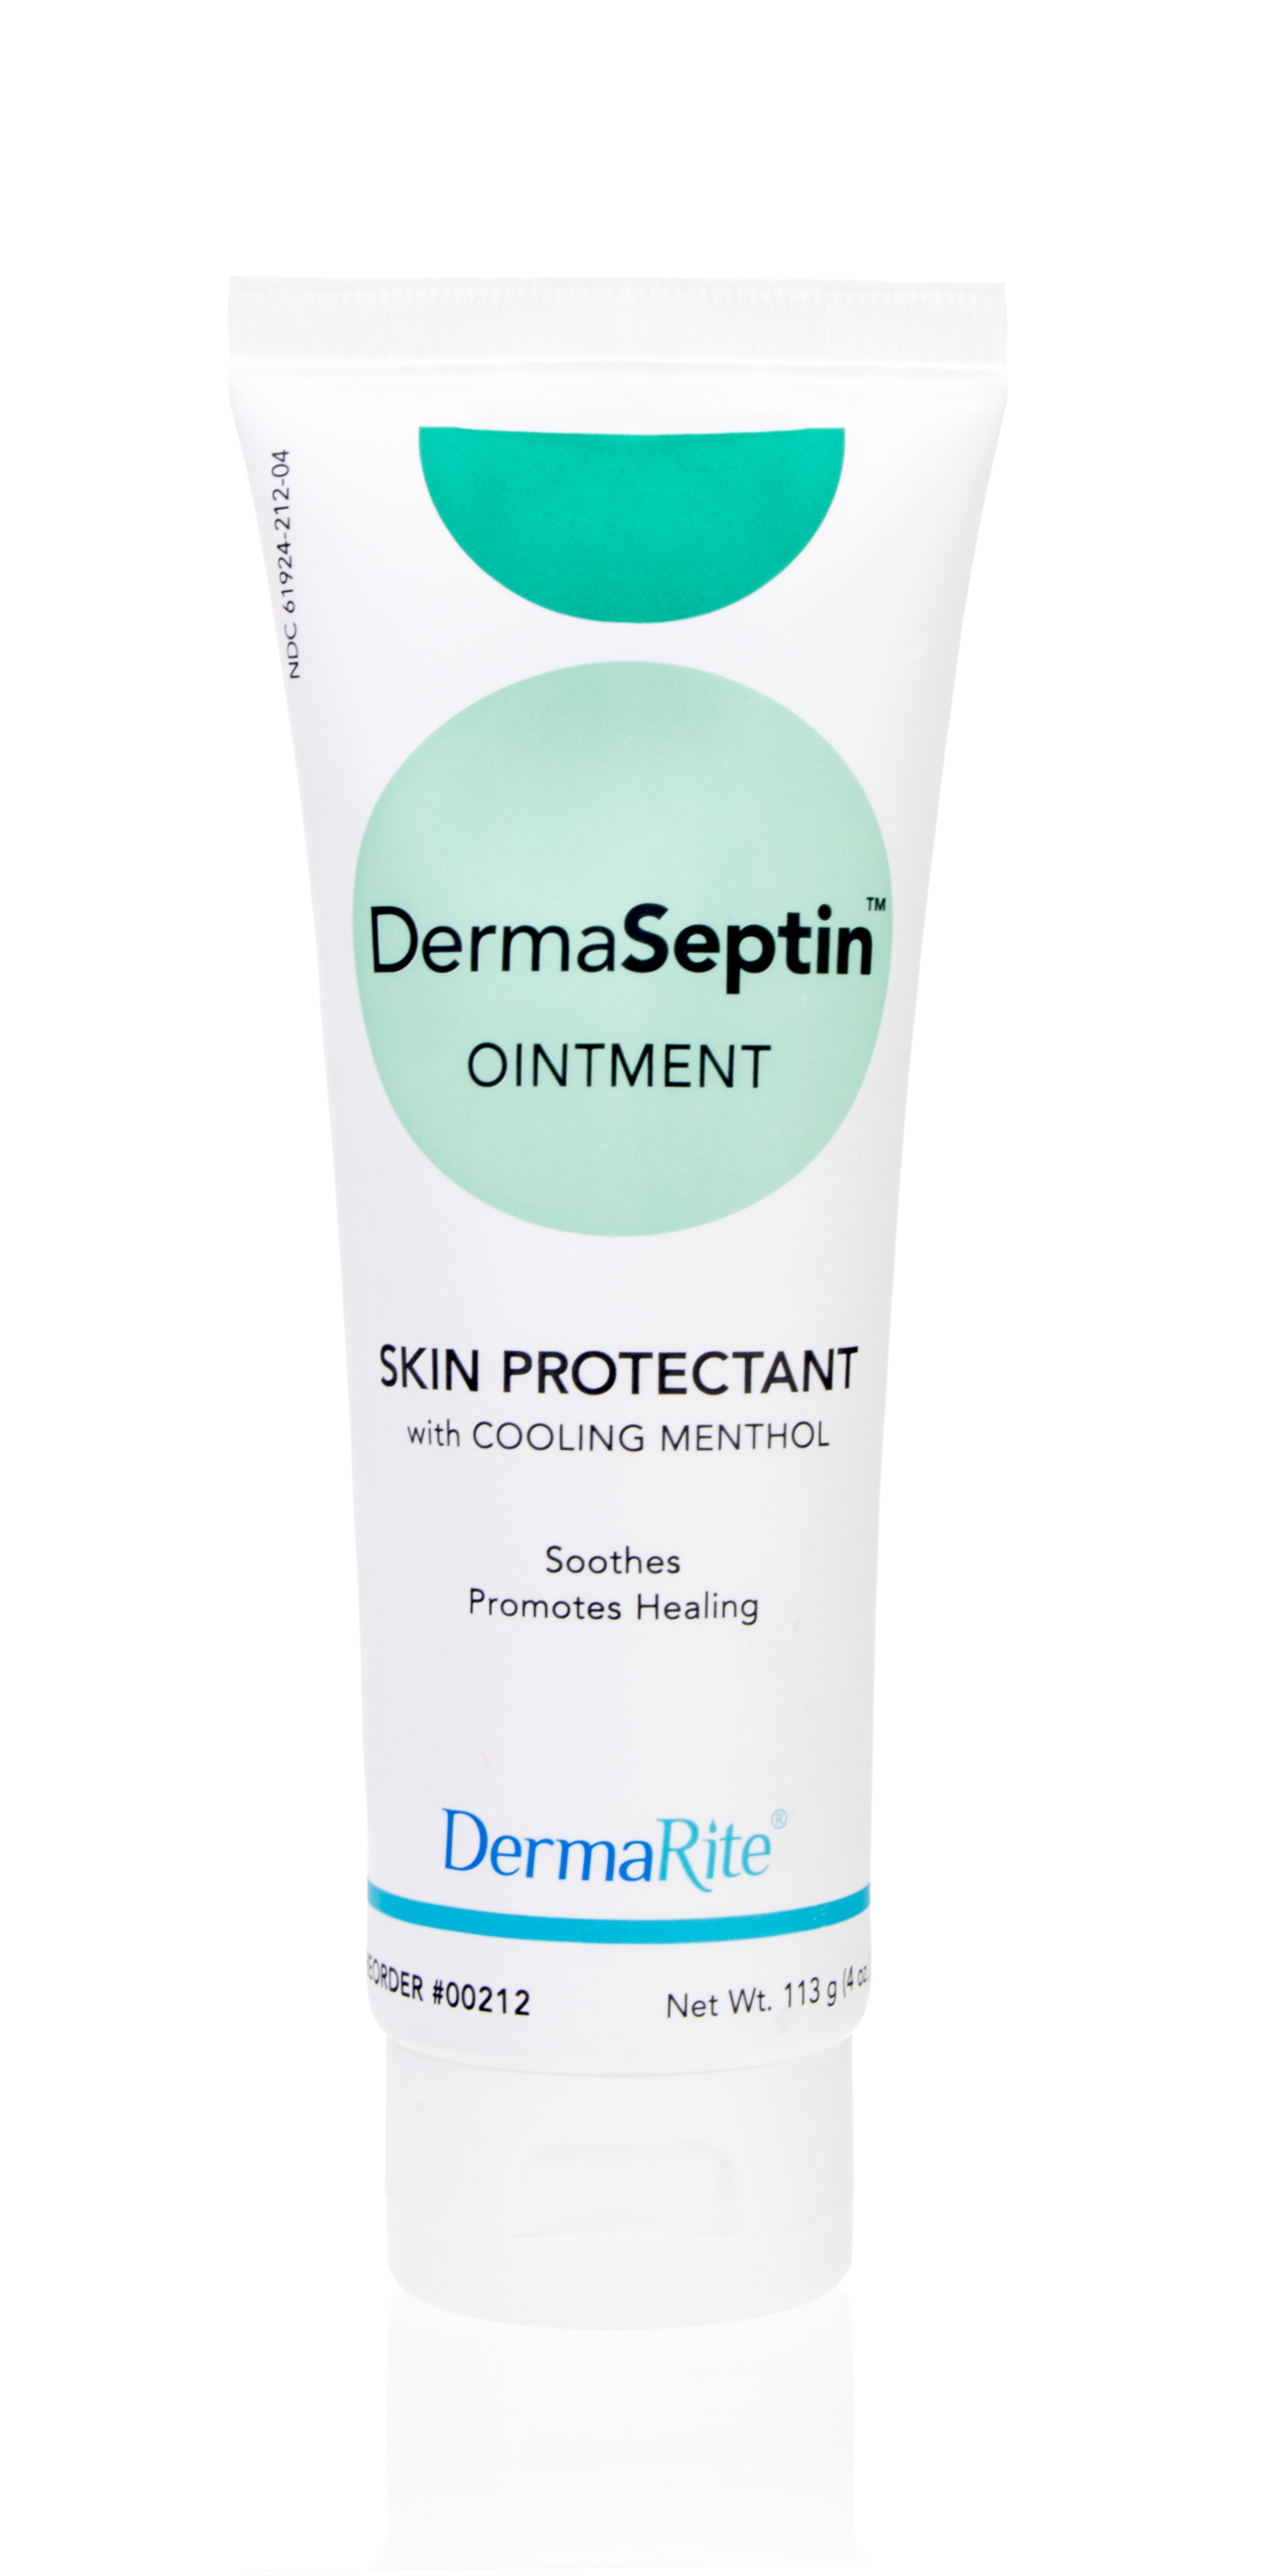 DermaSeptin Skin Protectant Ointment, 4 oz. Tube, Scented, Case of 24